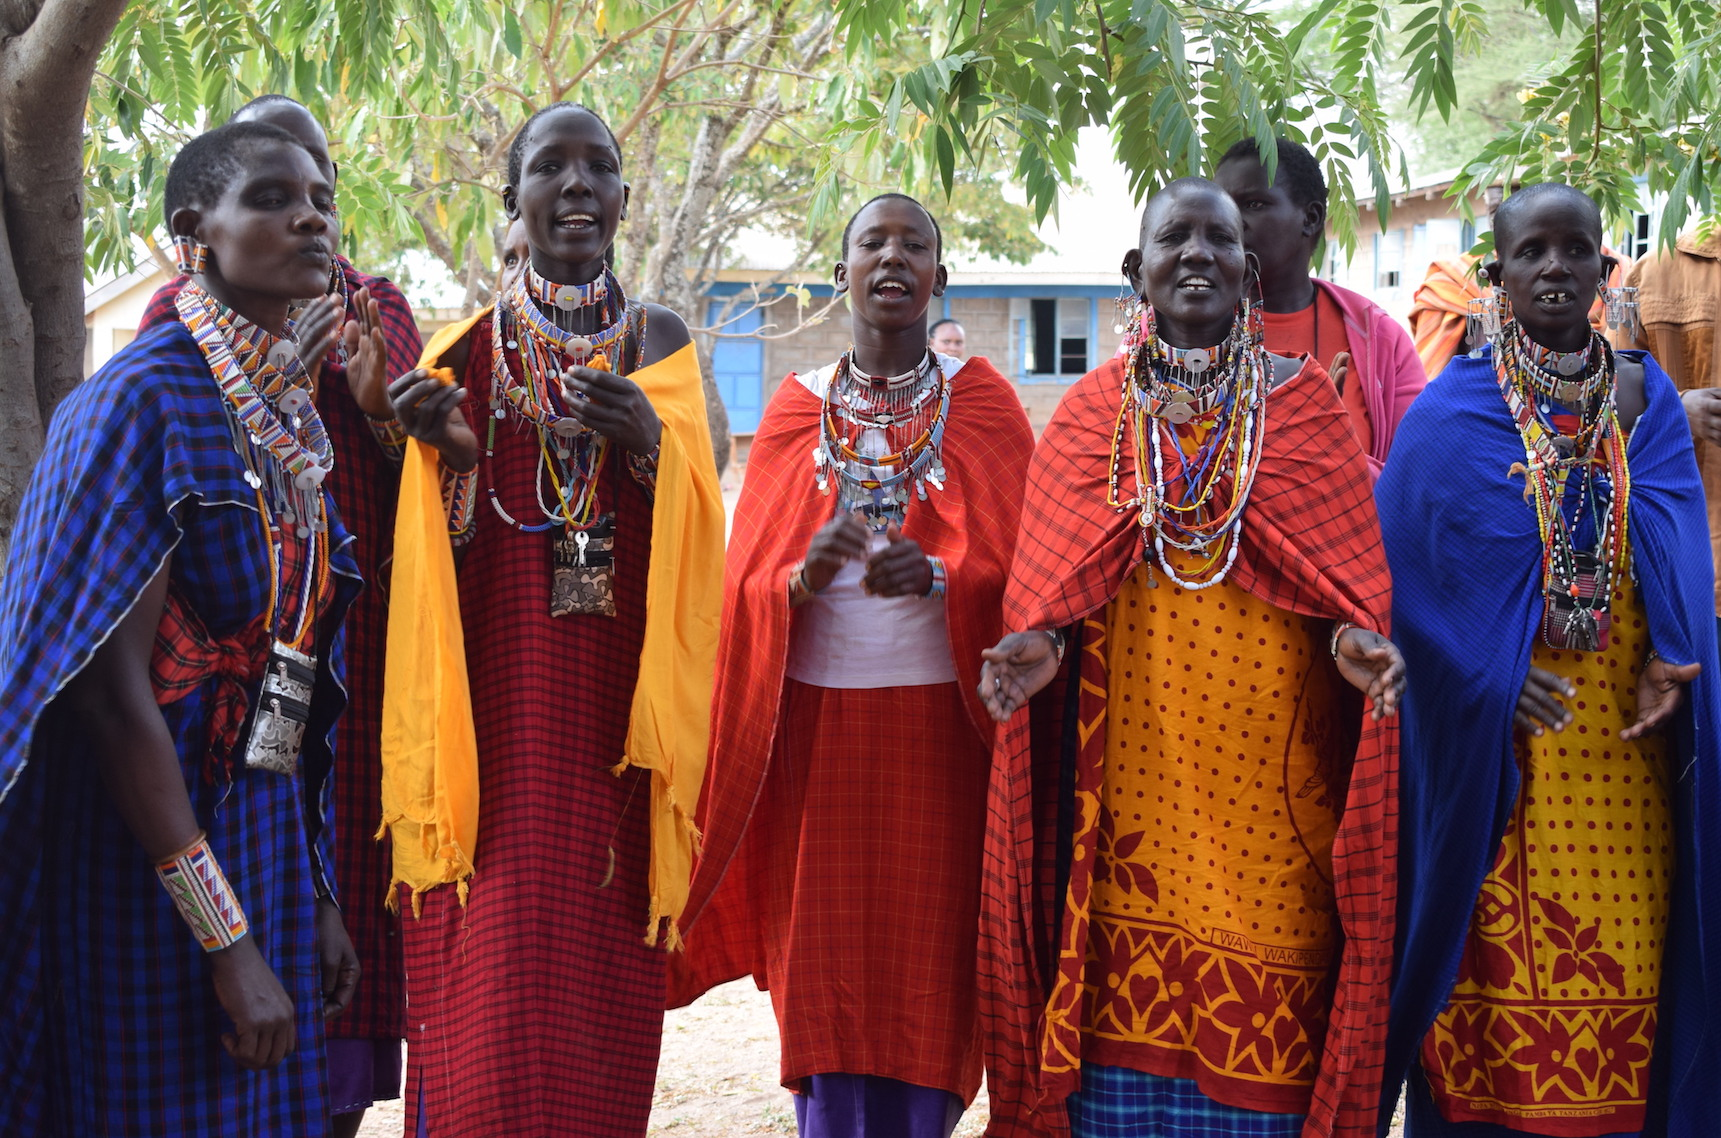 Seventy-eight (78) percent of girls and women of childbearing age (15 to 49 years old) have undergone FGM in Kenya's Maasai Community.  Churches are contributing to the fight against this practice.